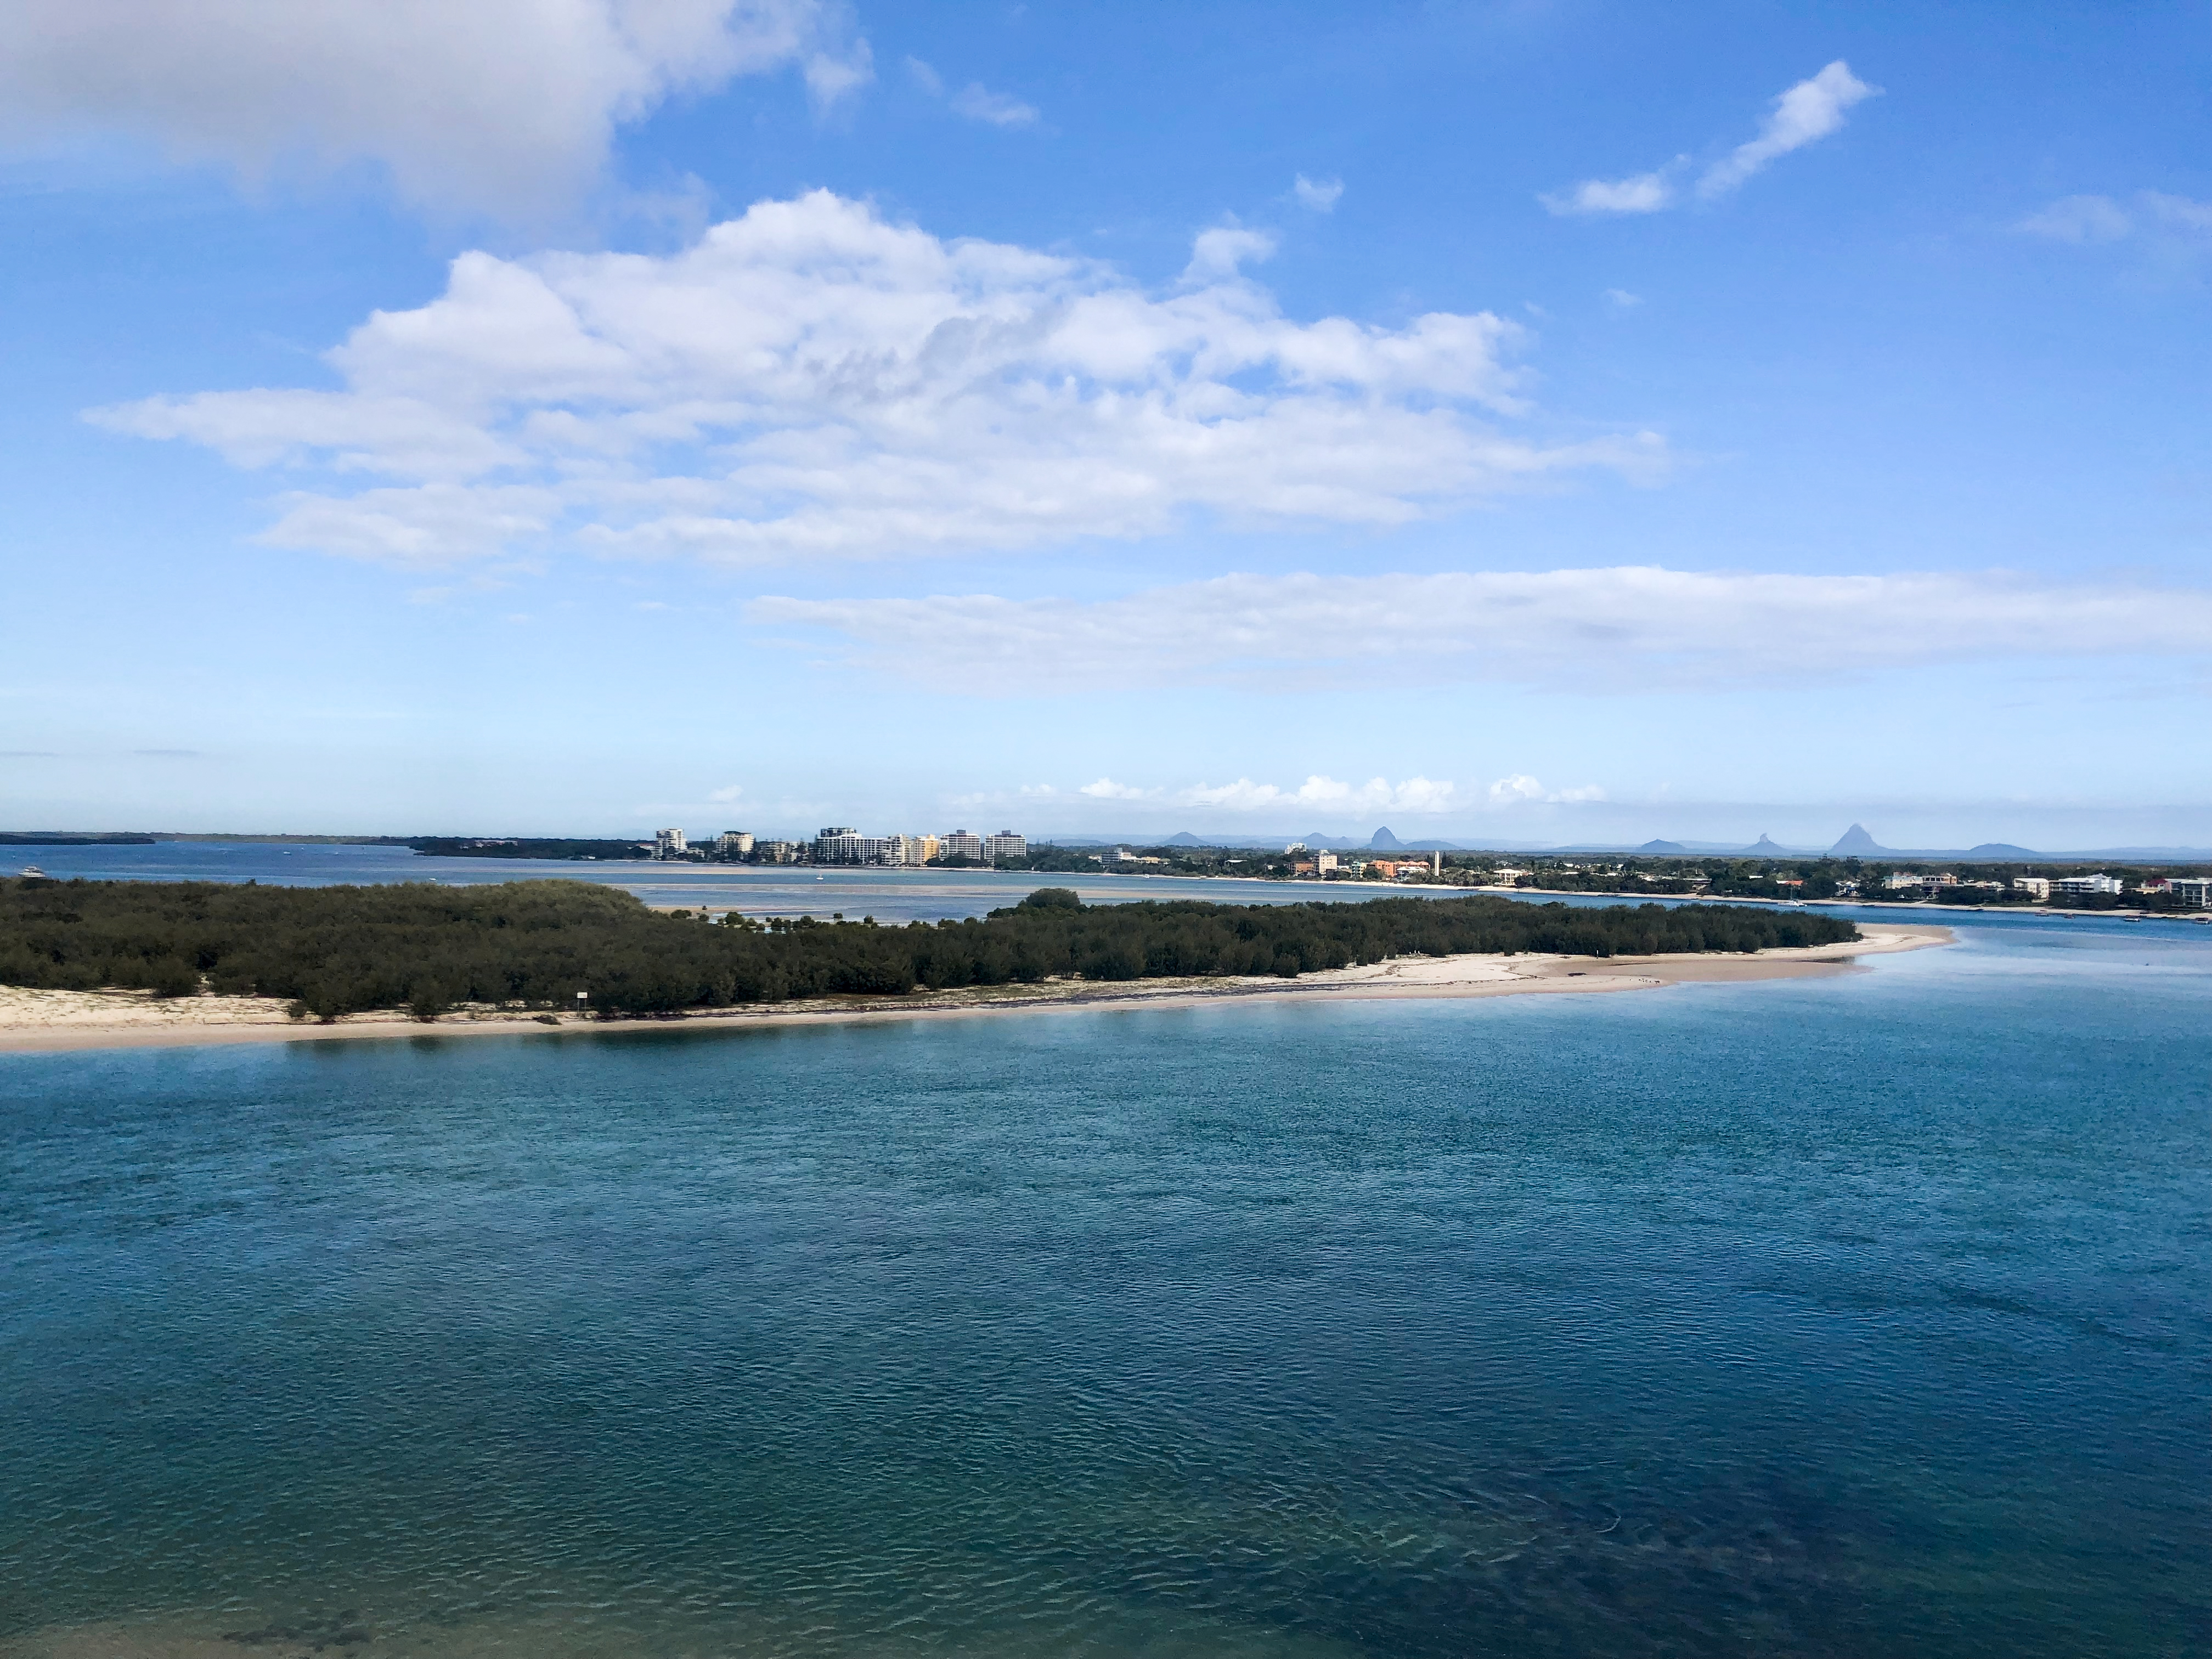 View of Bribie Island from Caloundra with the Glass House Mountains in the distance